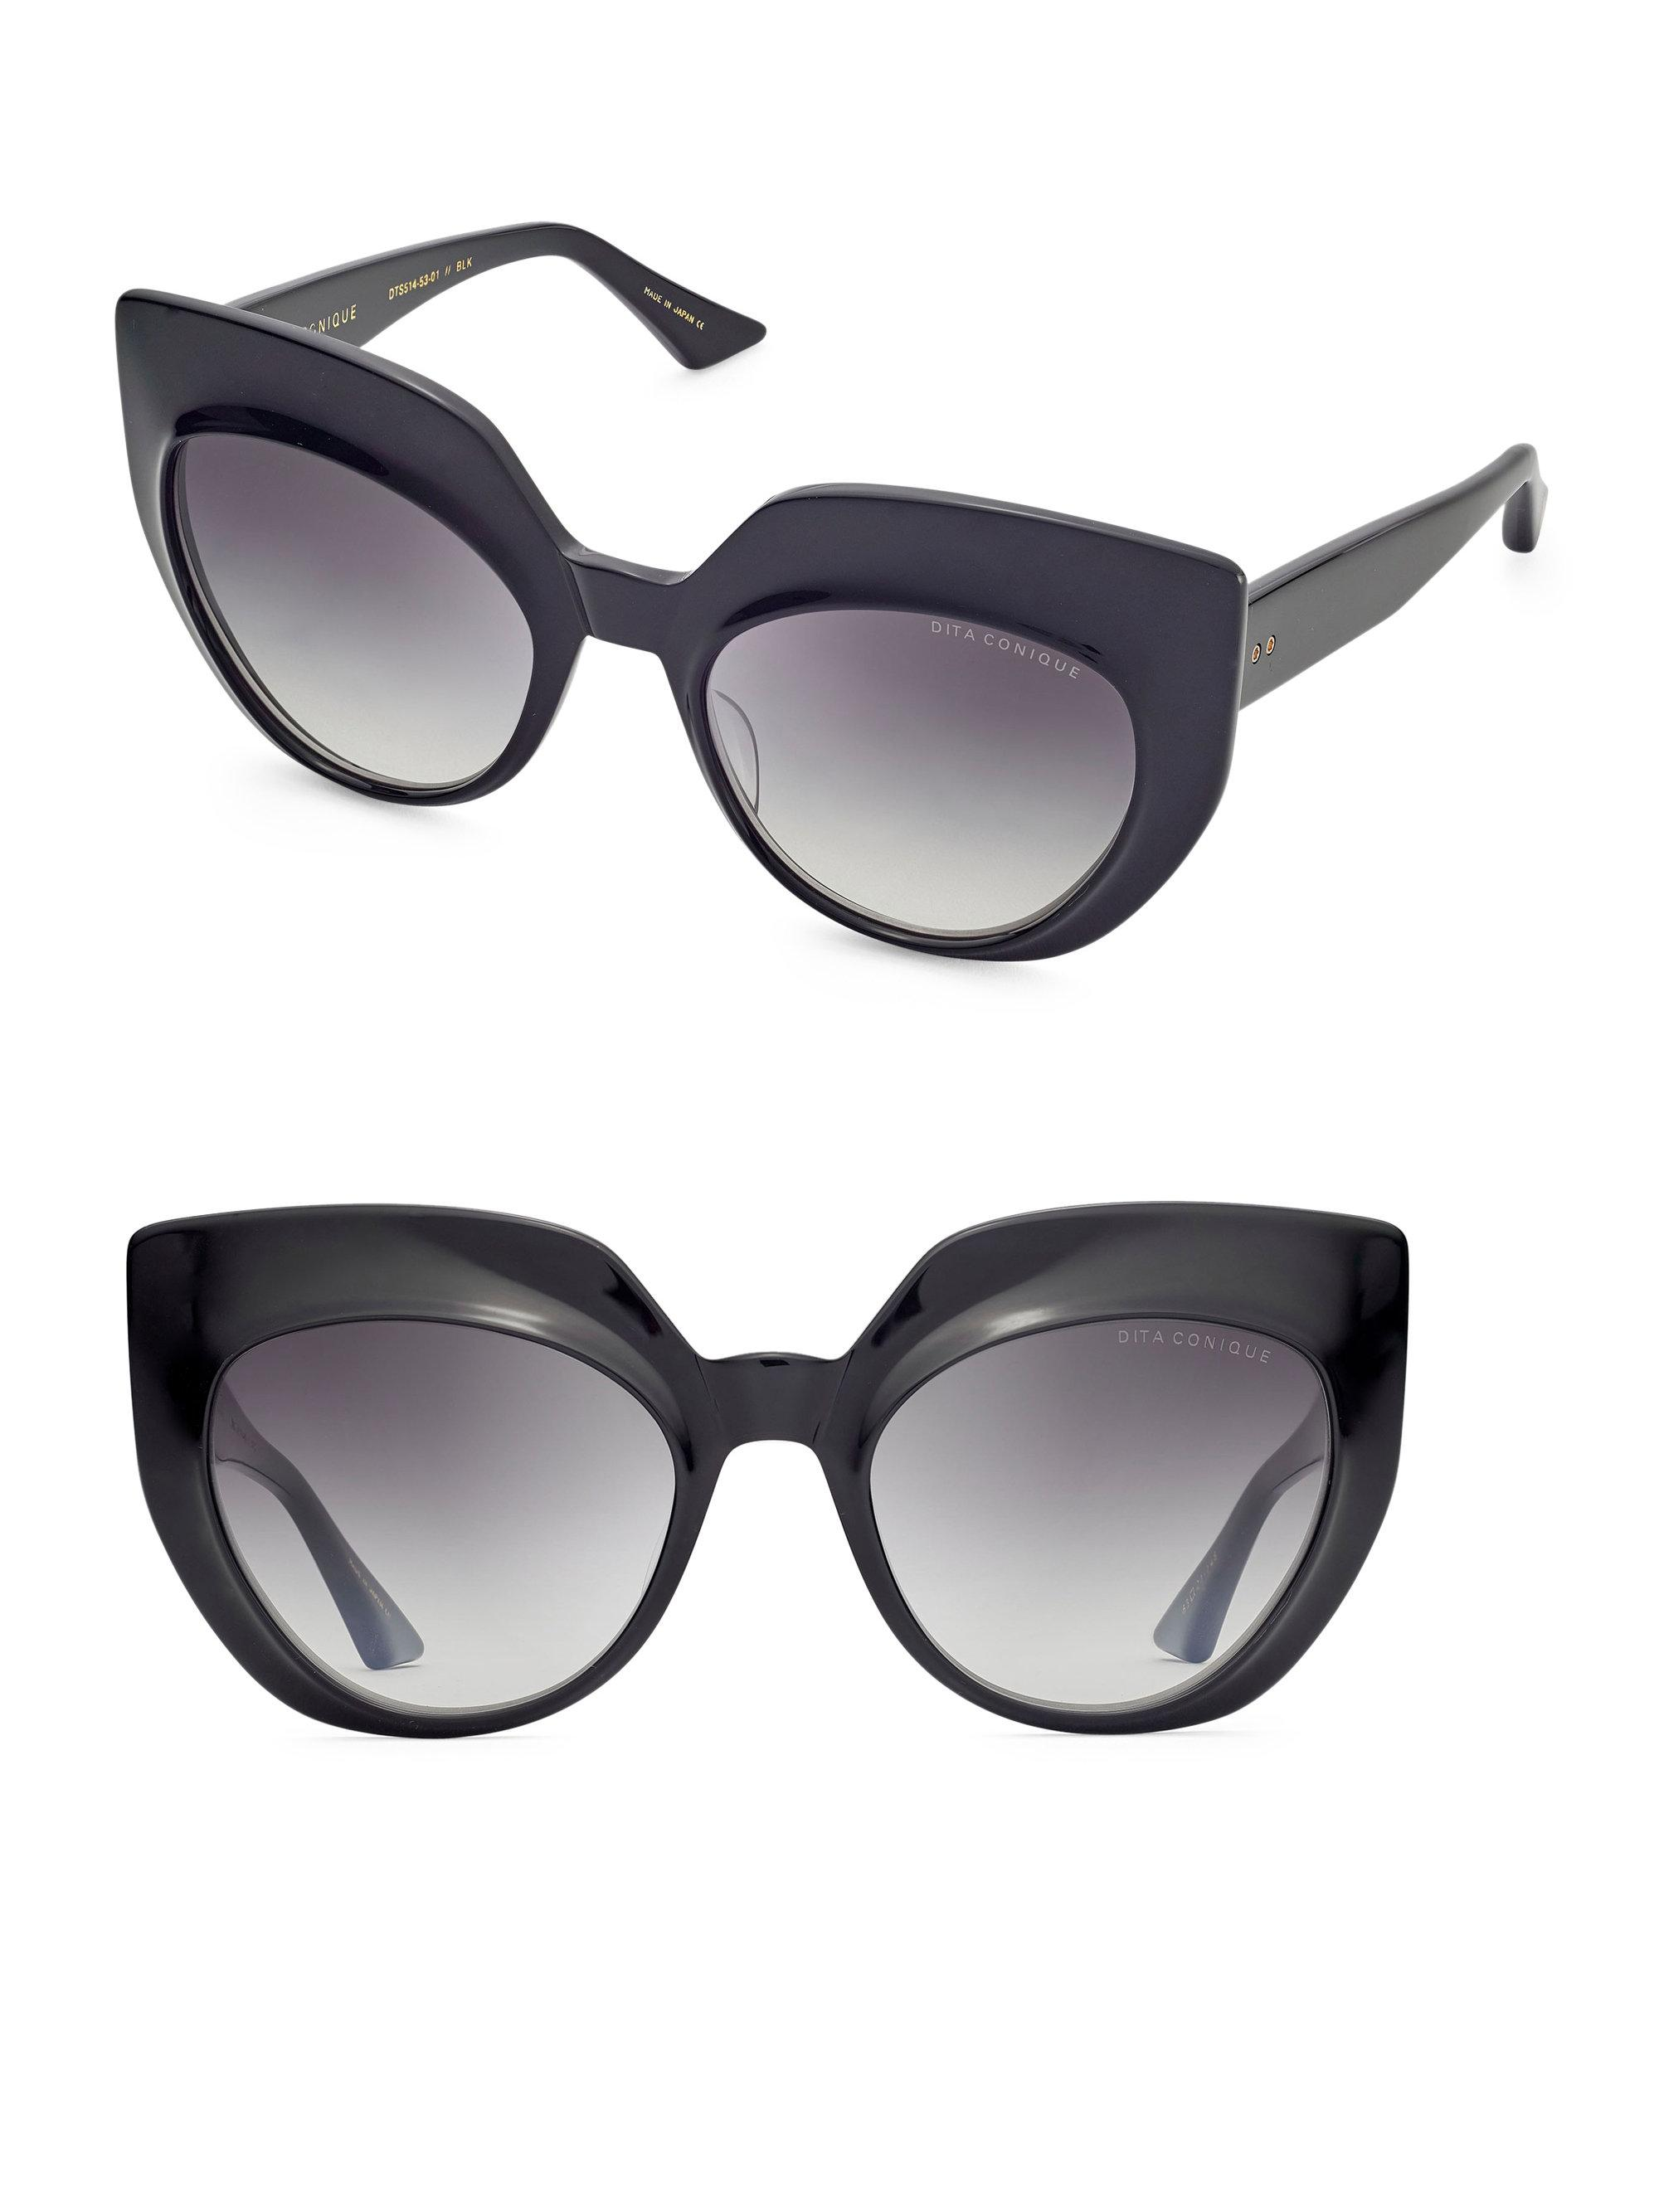 075d584d20c Lyst - Dita Eyewear Conique 53mm Cat-eye Sunglasses in Black